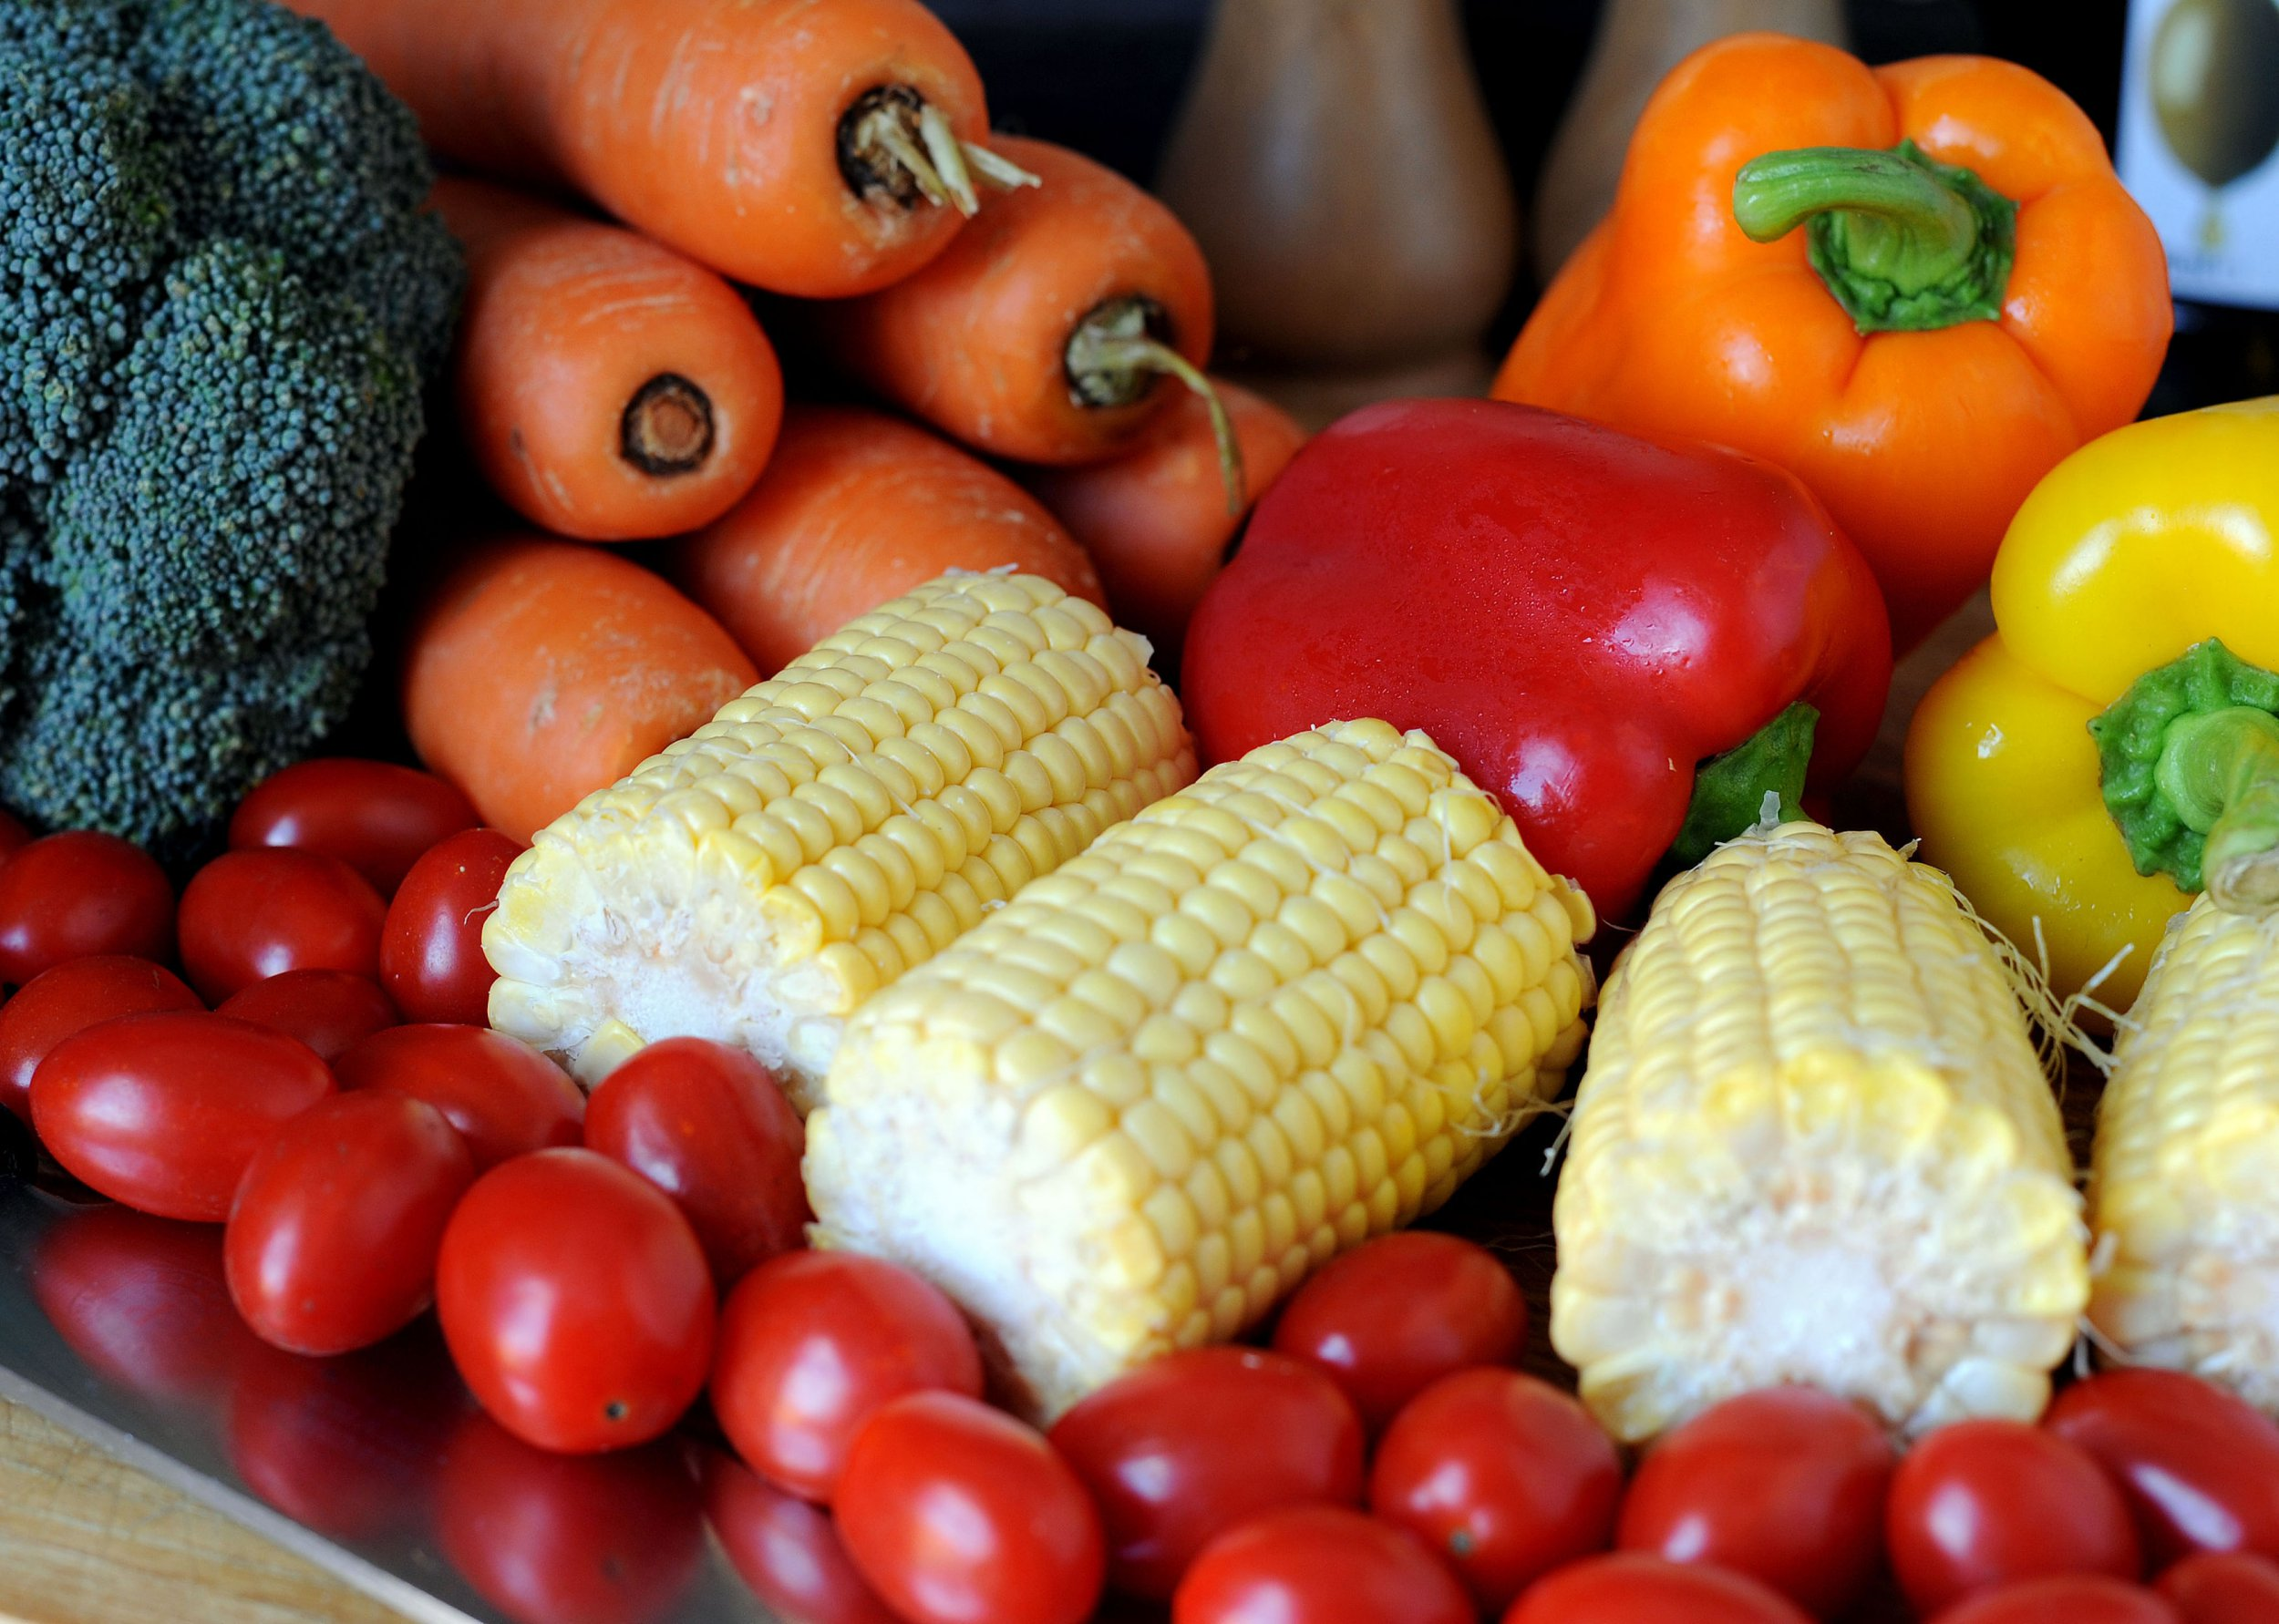 Embargoed to 2000 Monday June 11 File photo dated 20/07/14 of vegetables which could be in short supply by the middle of the century as a result of climate change, water shortage and loss of biodiversity, a study suggests. PRESS ASSOCIATION Photo. Issue date: Monday June 11, 2018. Global average yields of vegetables and legumes such as soy beans and lentils are predicted to be reduced by 35% and 9% respectively. See PA story SCIENCE Vegetables. Photo credit should read: Nick Ansell/PA Wire